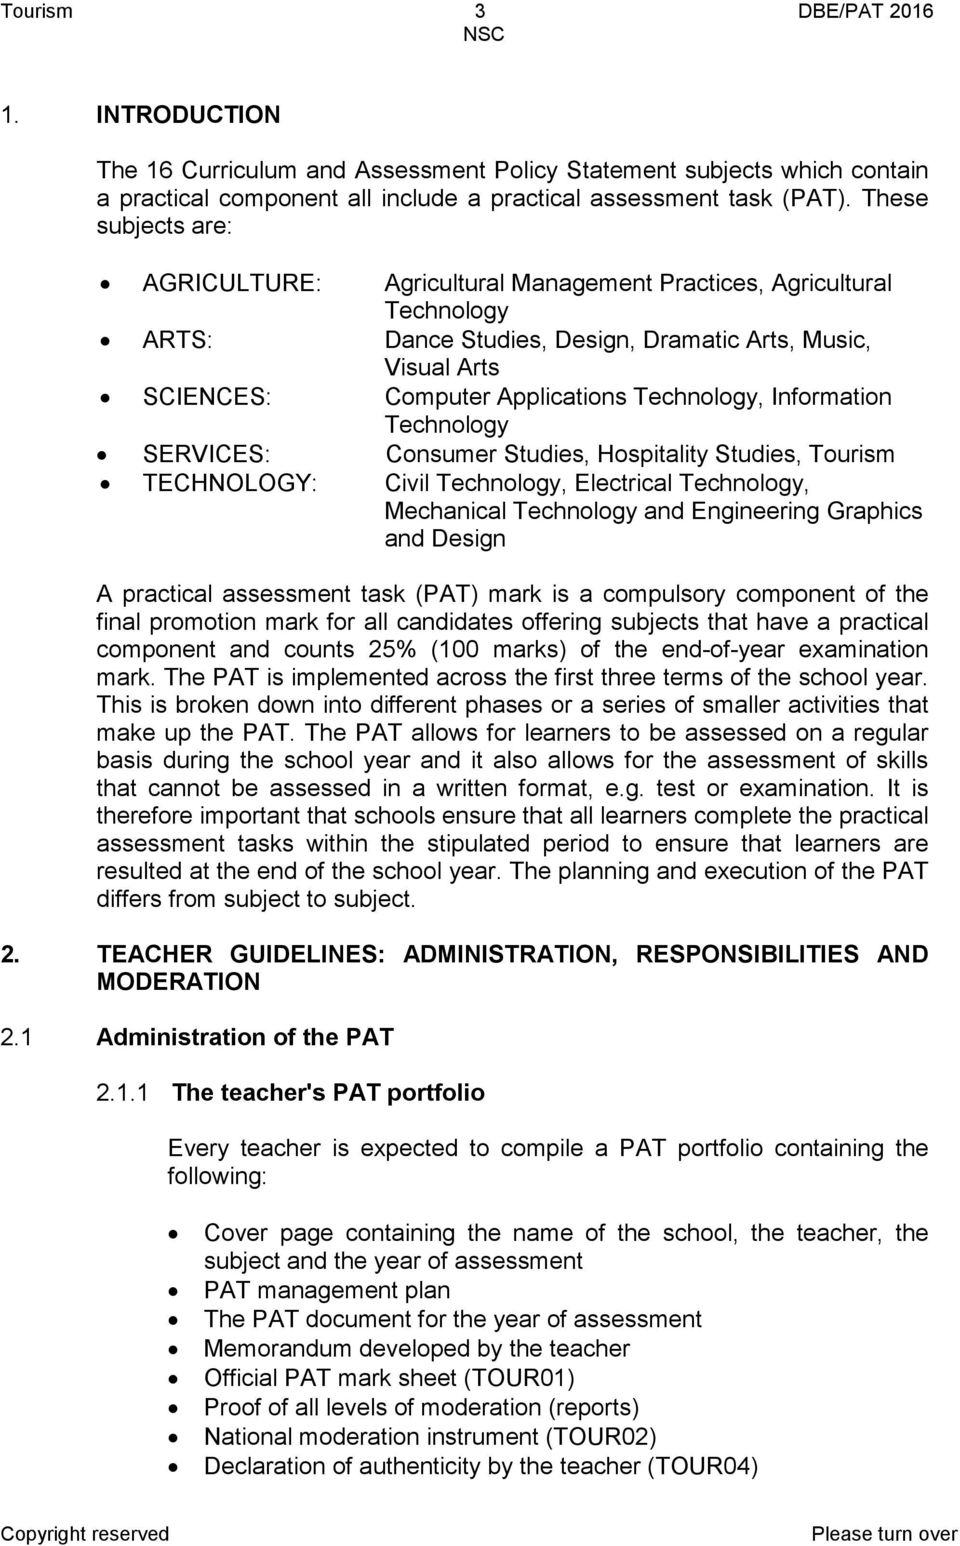 tourism guidelines for practical assessment tasks pdf rh docplayer net 2nd Grade Following the Rules at School Animated Edit Name Tags School